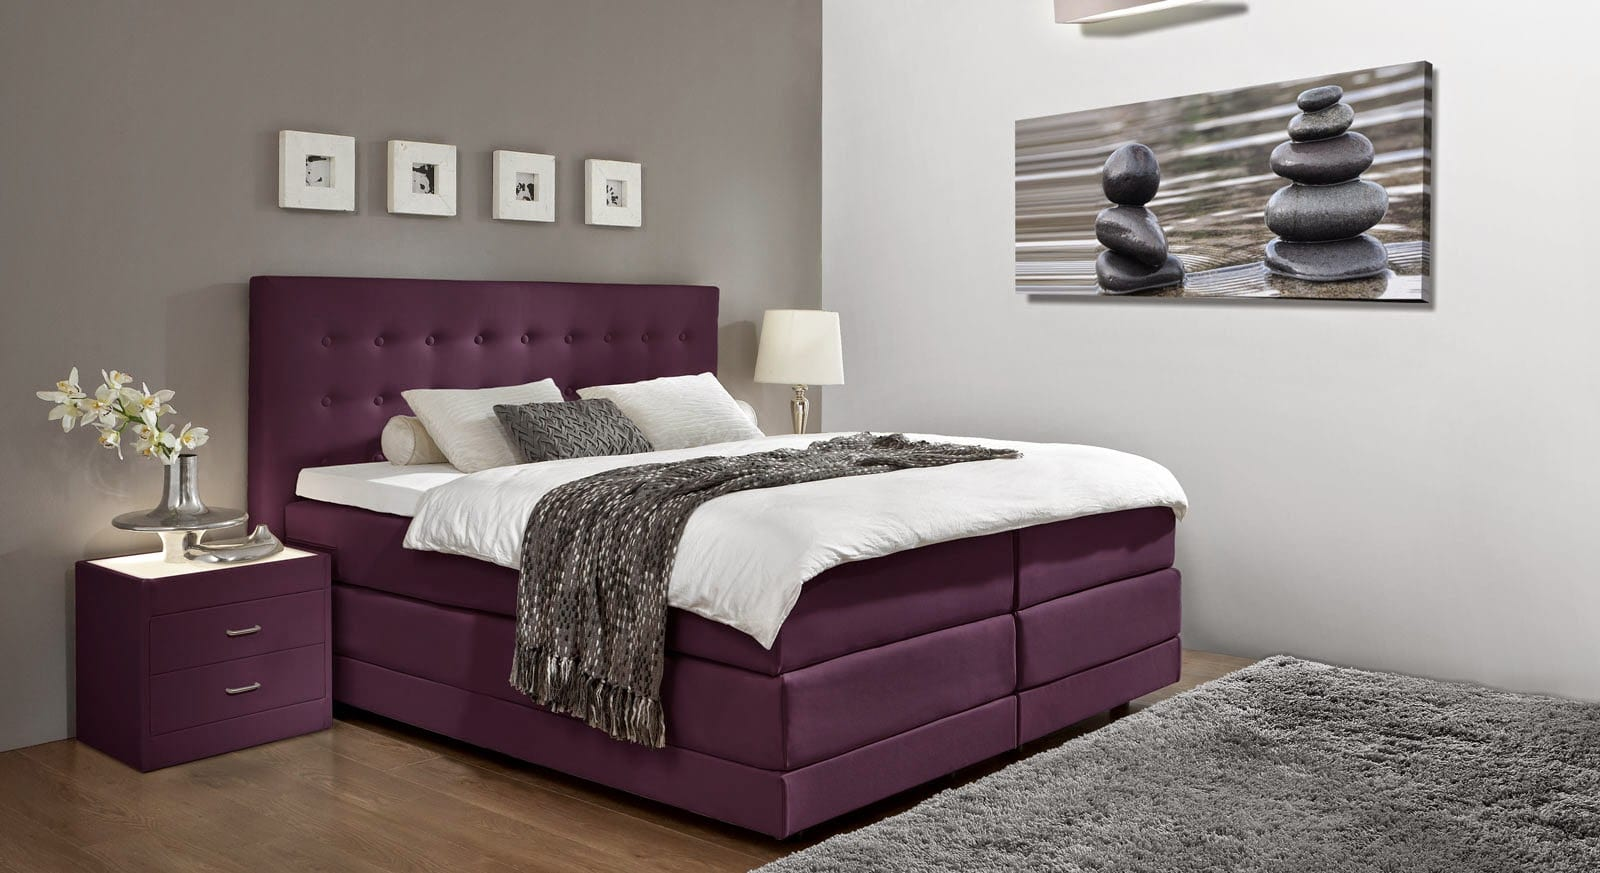 El color morado para decorar dormitorios modernos